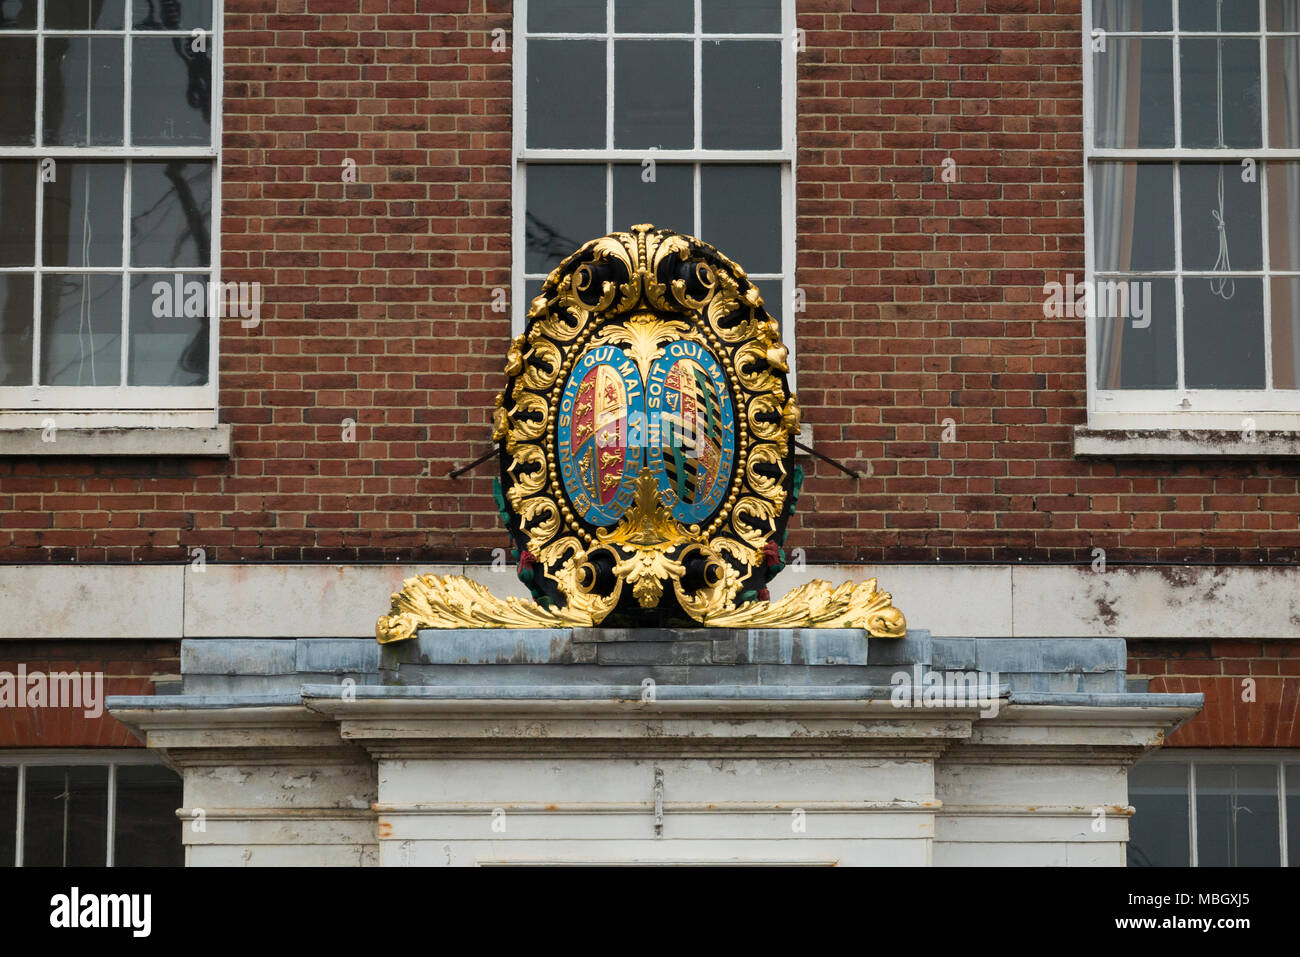 Crest / coat of arms that was removed the bow of HMS Victory ( Nelson's flagship at Battle of Trafalgar ) now placed on building. Portsmouth historic dockyard. UK - Stock Image